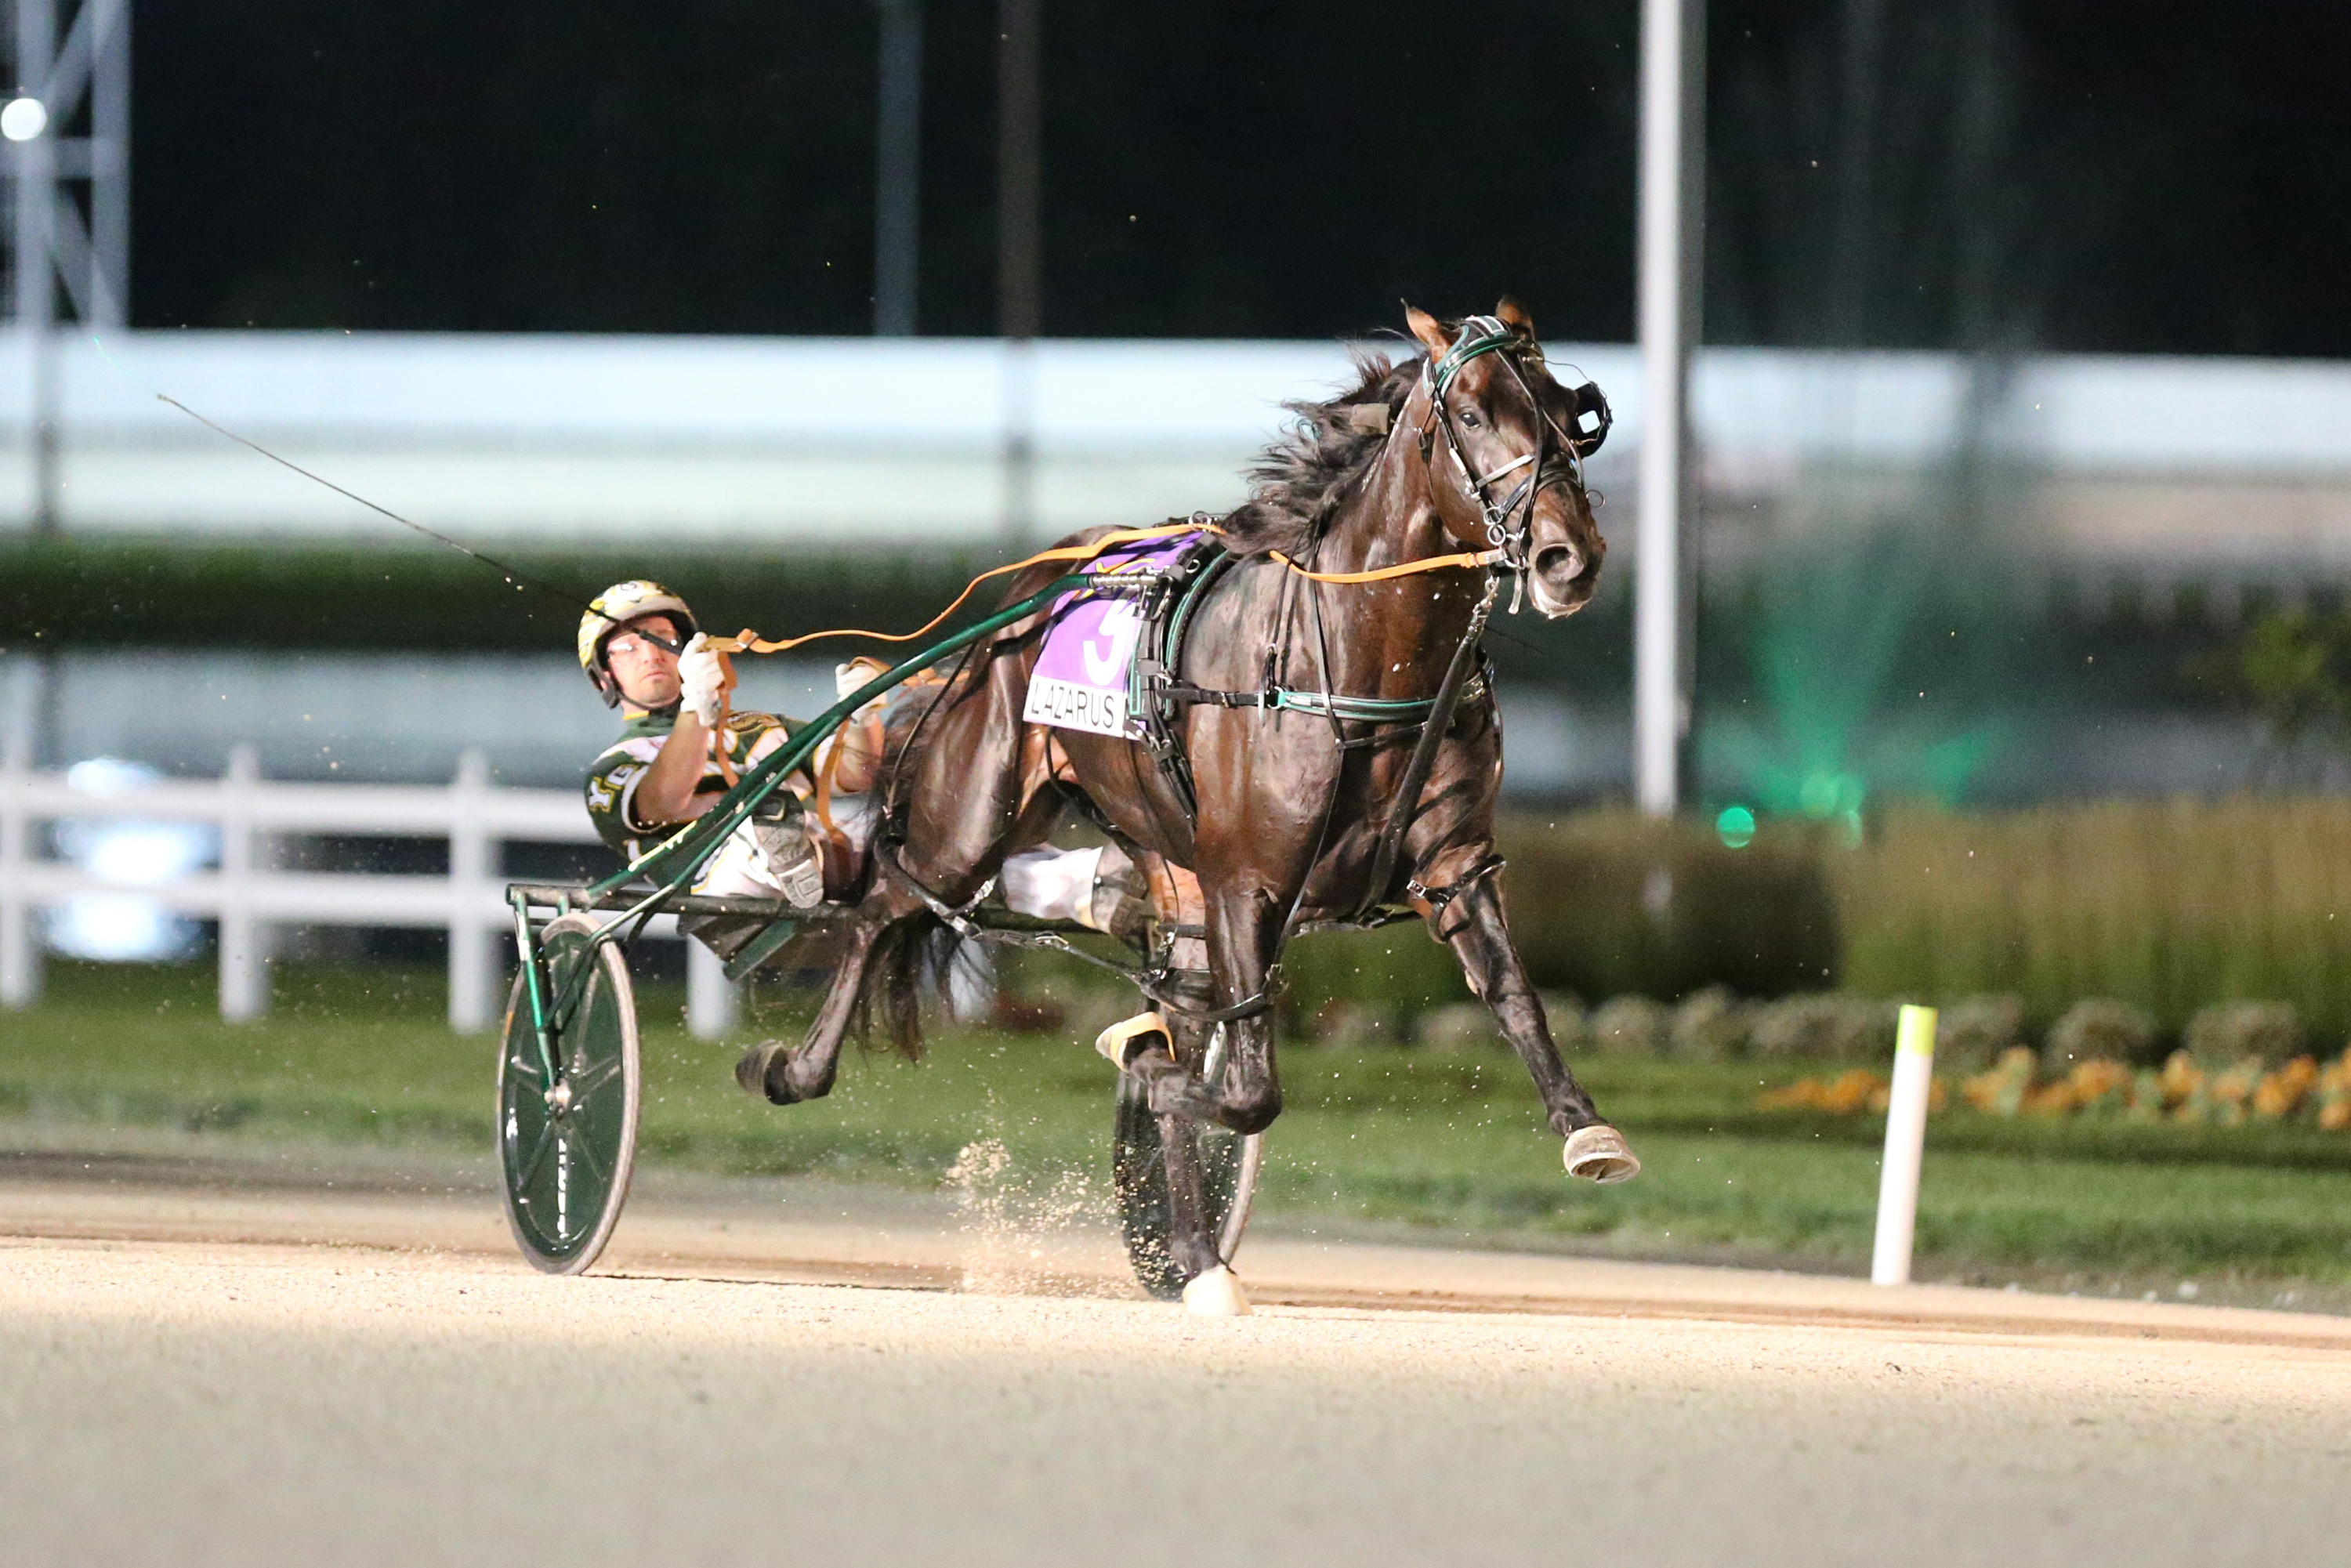 Lazarus wins: Champ bounces back in US - Harness Racing Victoria